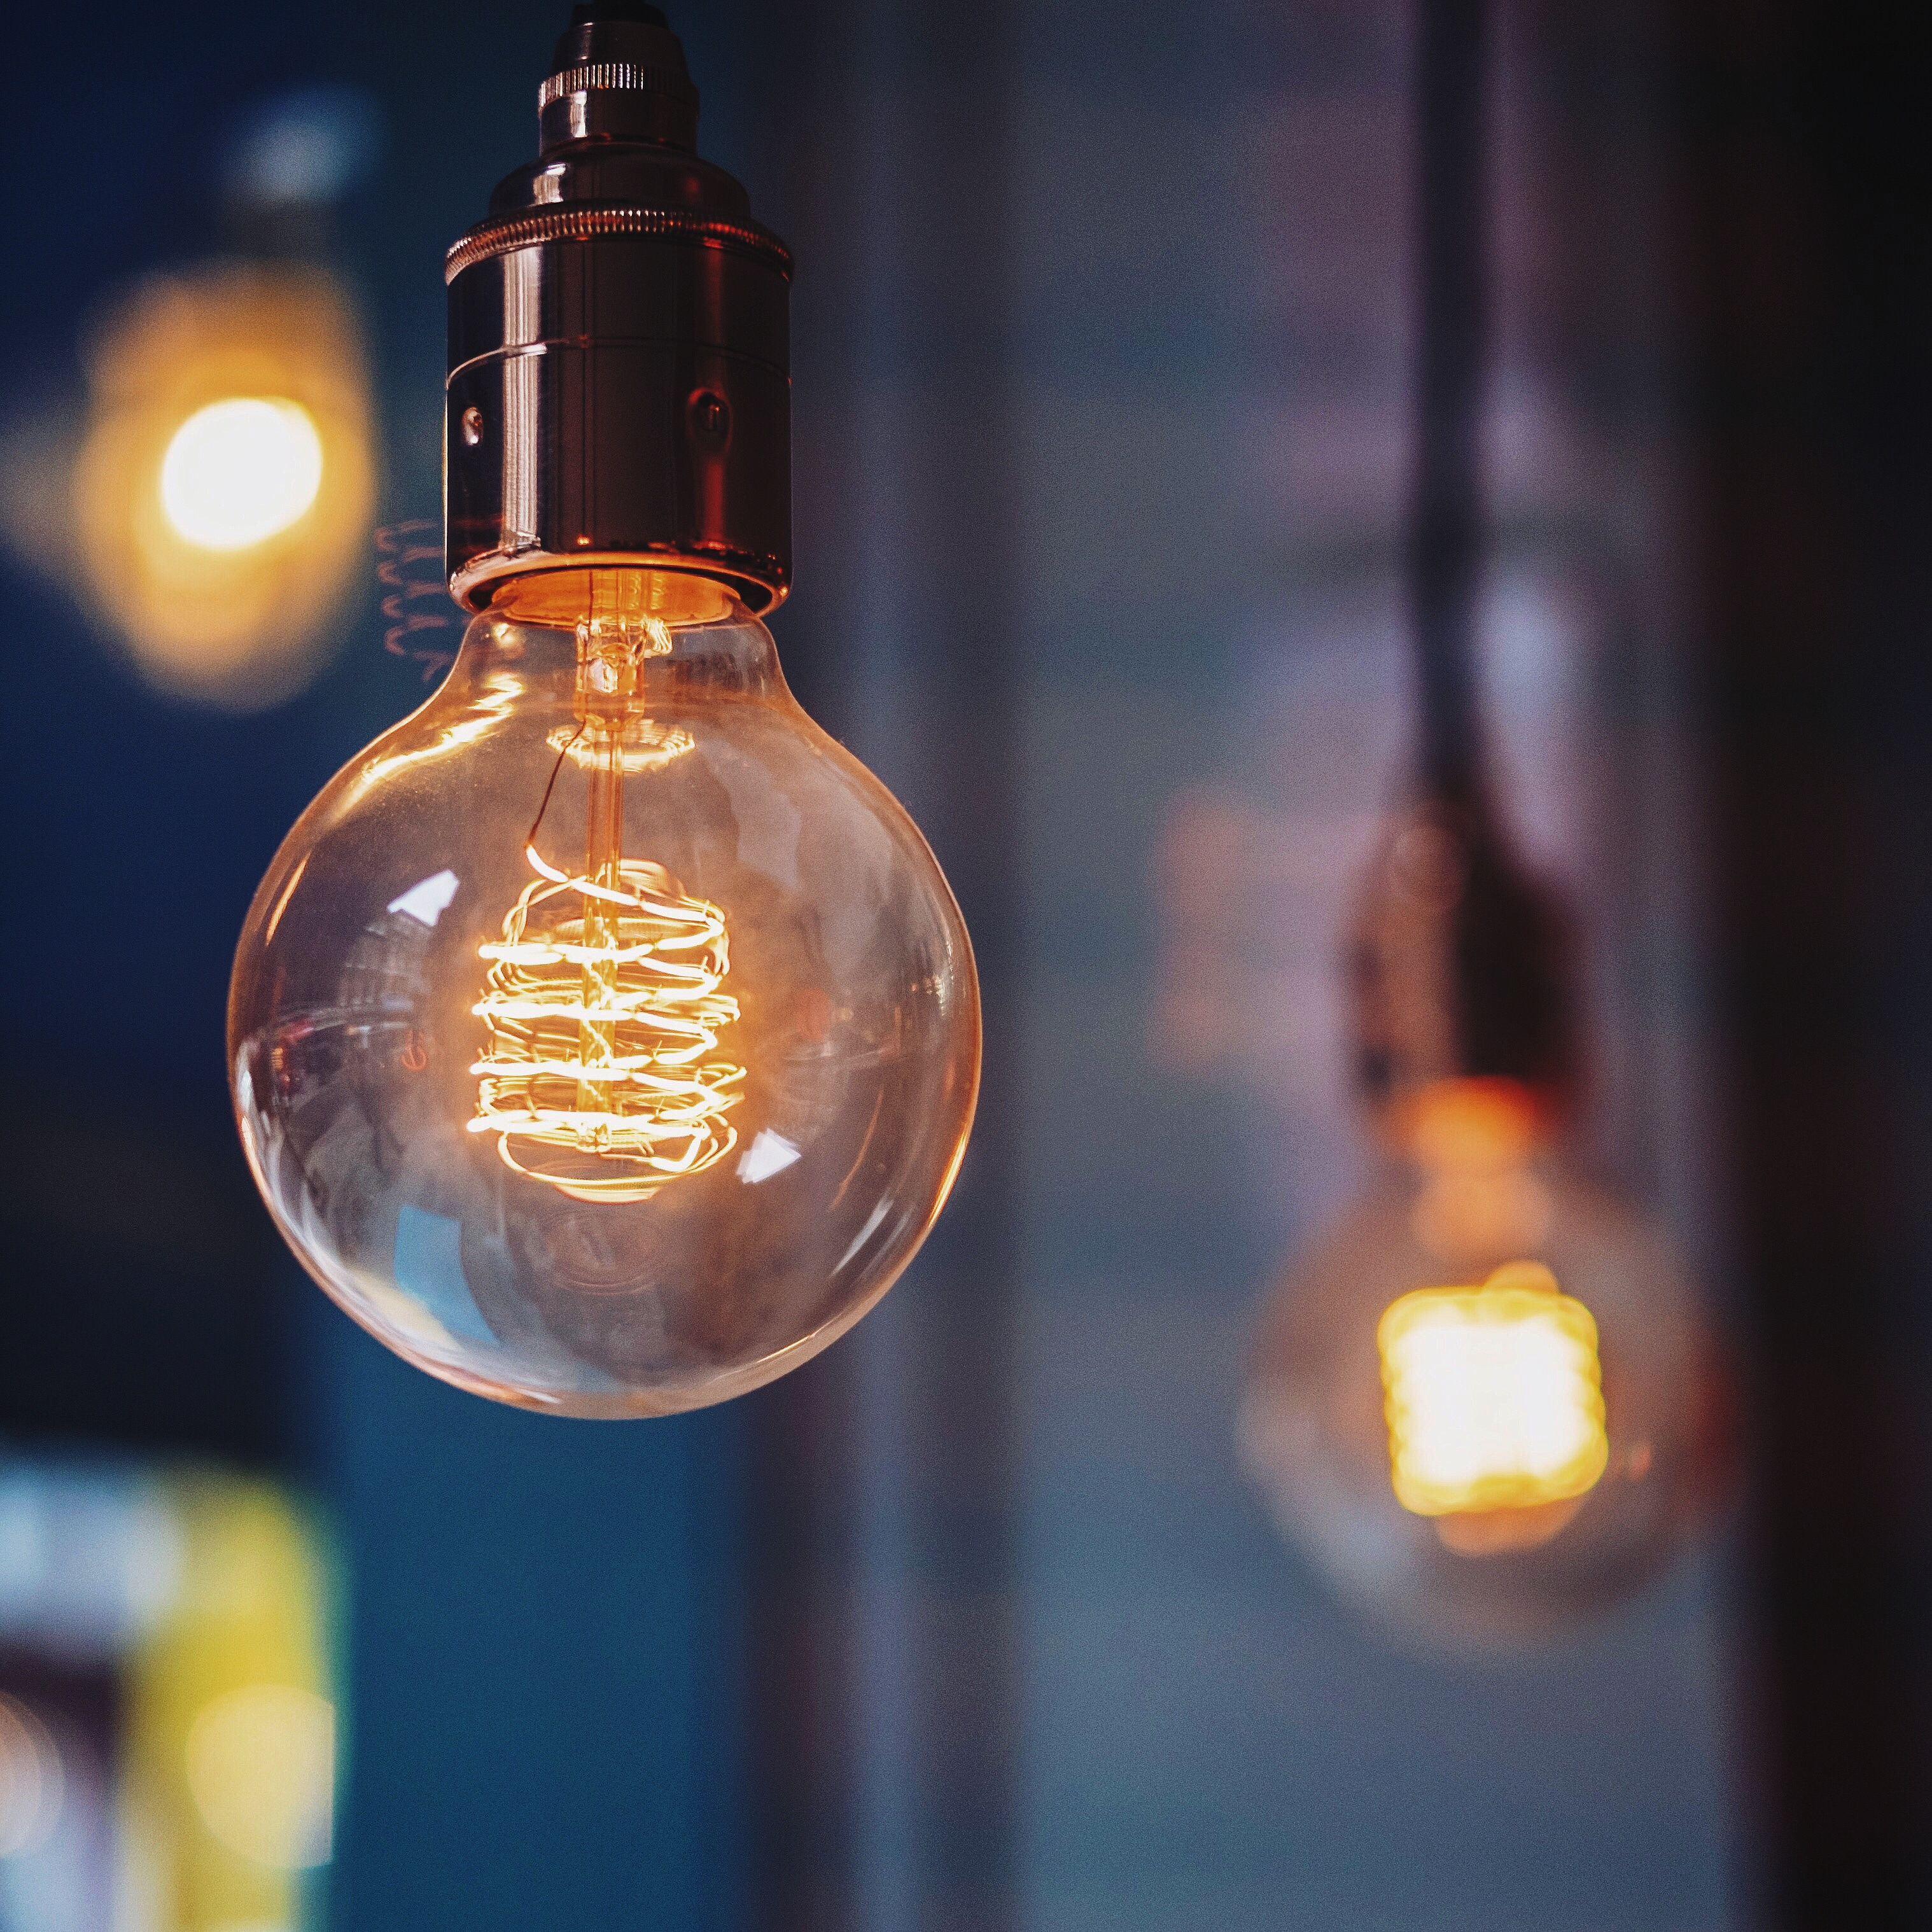 Close-Up View Of Light Bulb